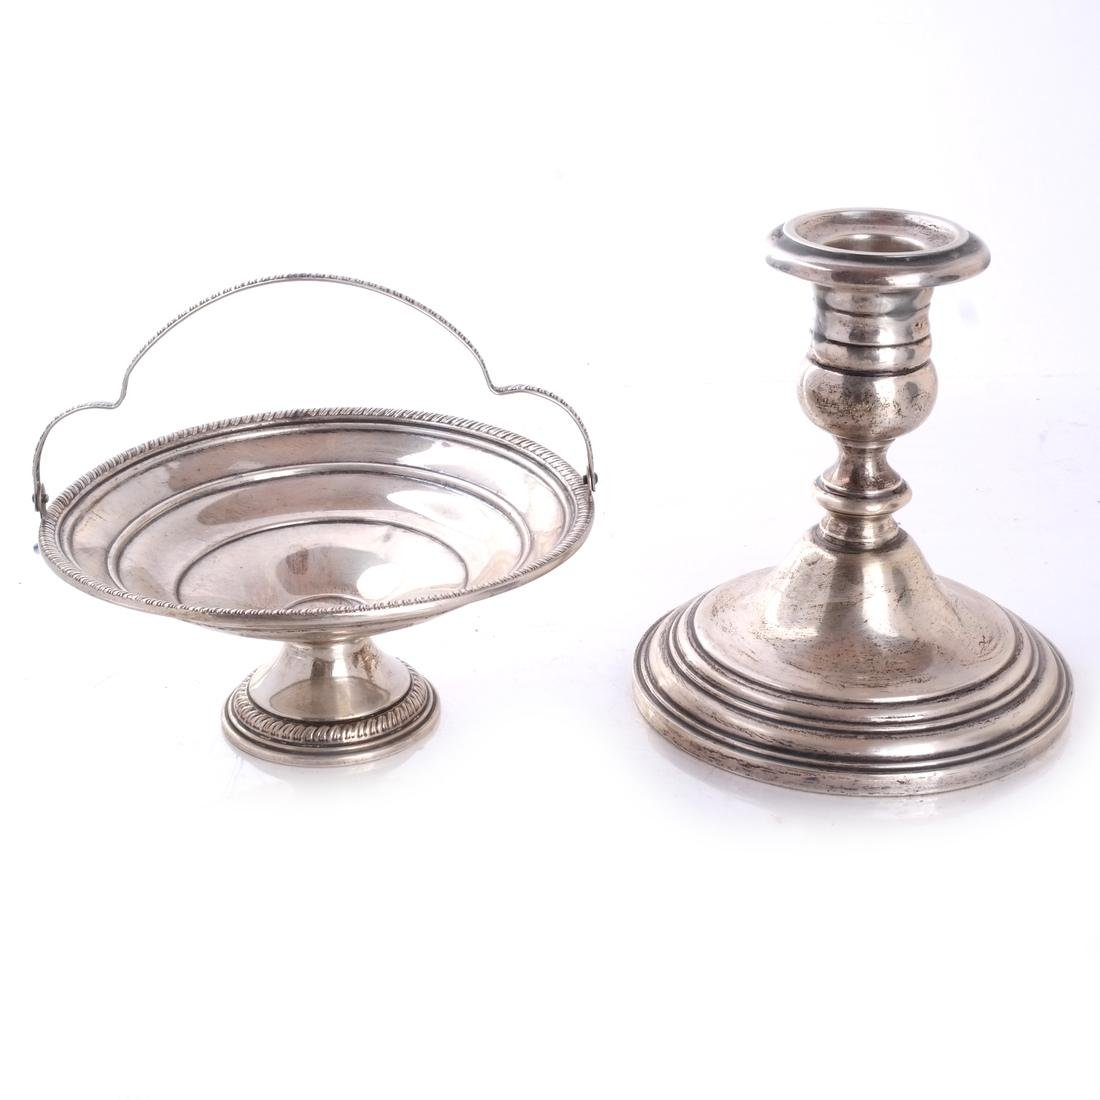 Collection Silver Weighted and Plated Articles - 4